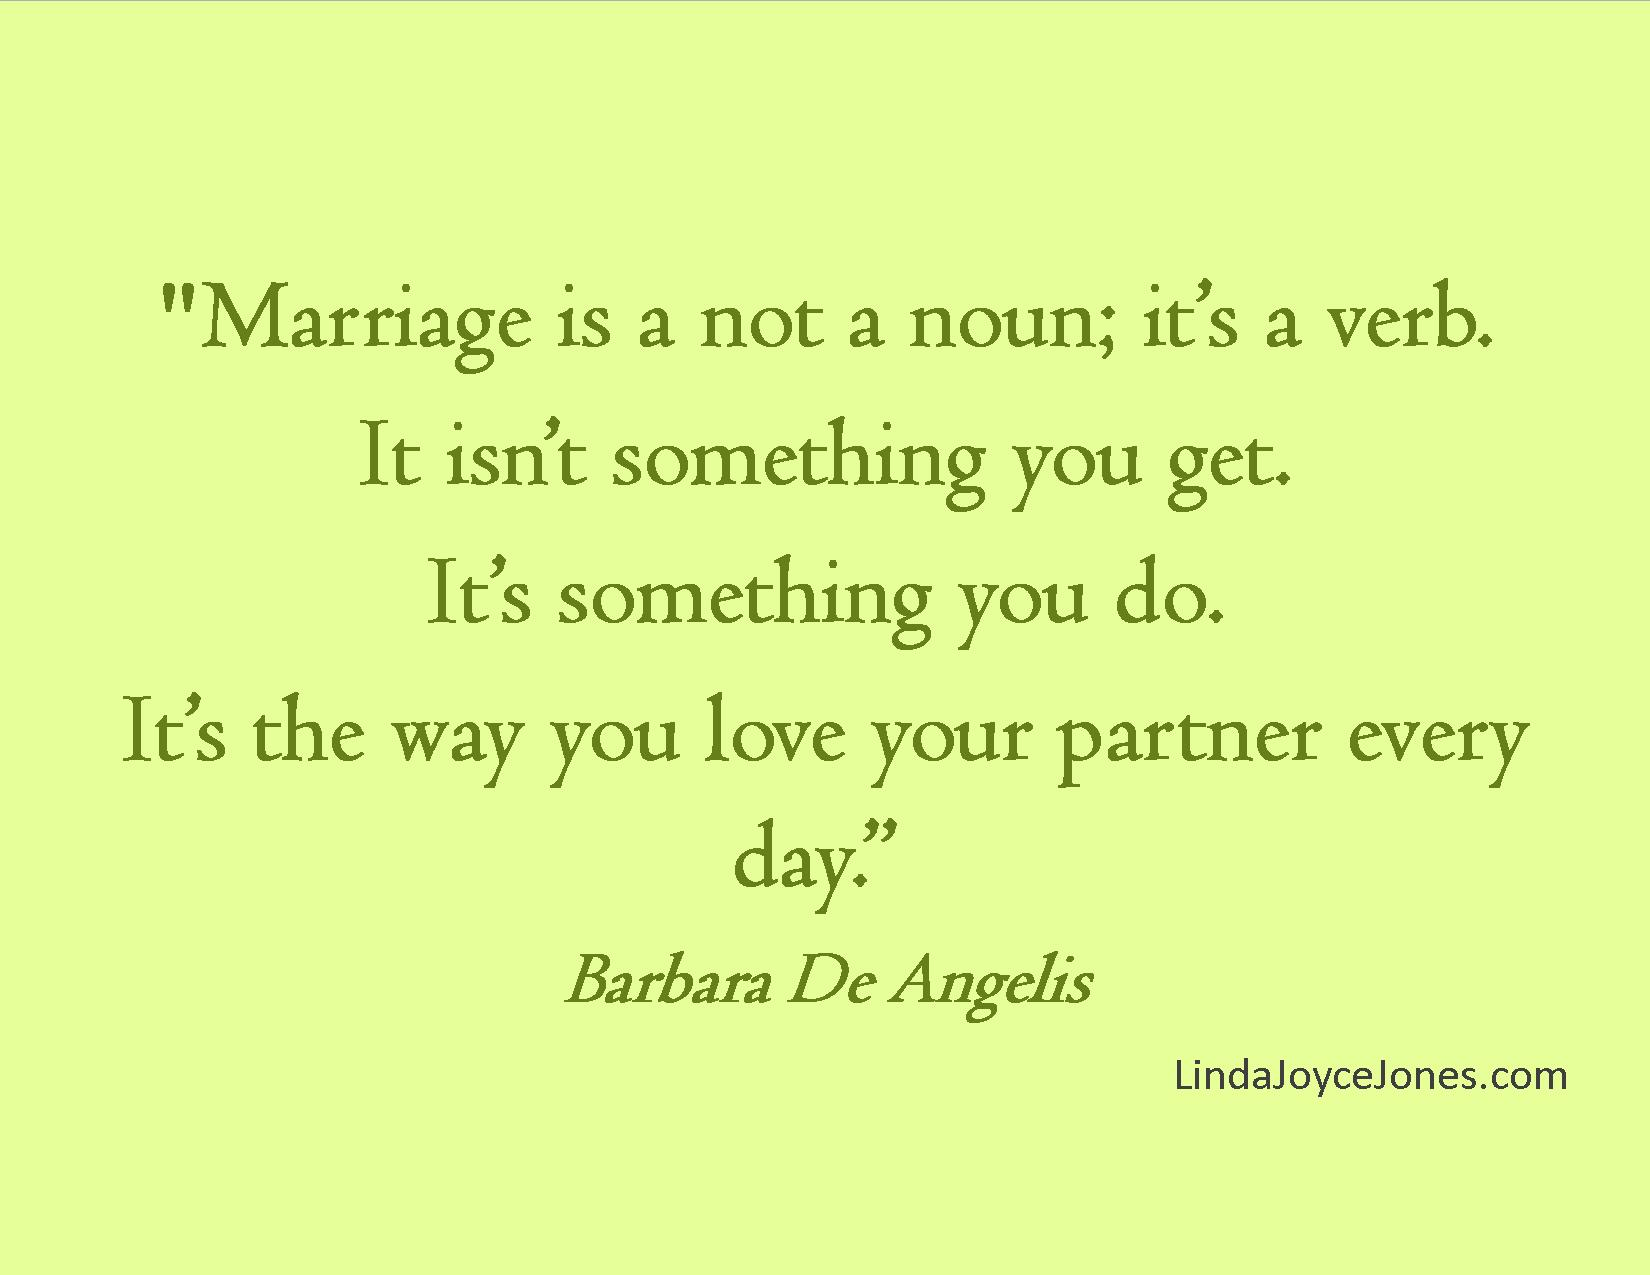 Quotes On Love And Marriage Quotes About Love Tagalog Tumblr And Life For Him Cover Photo